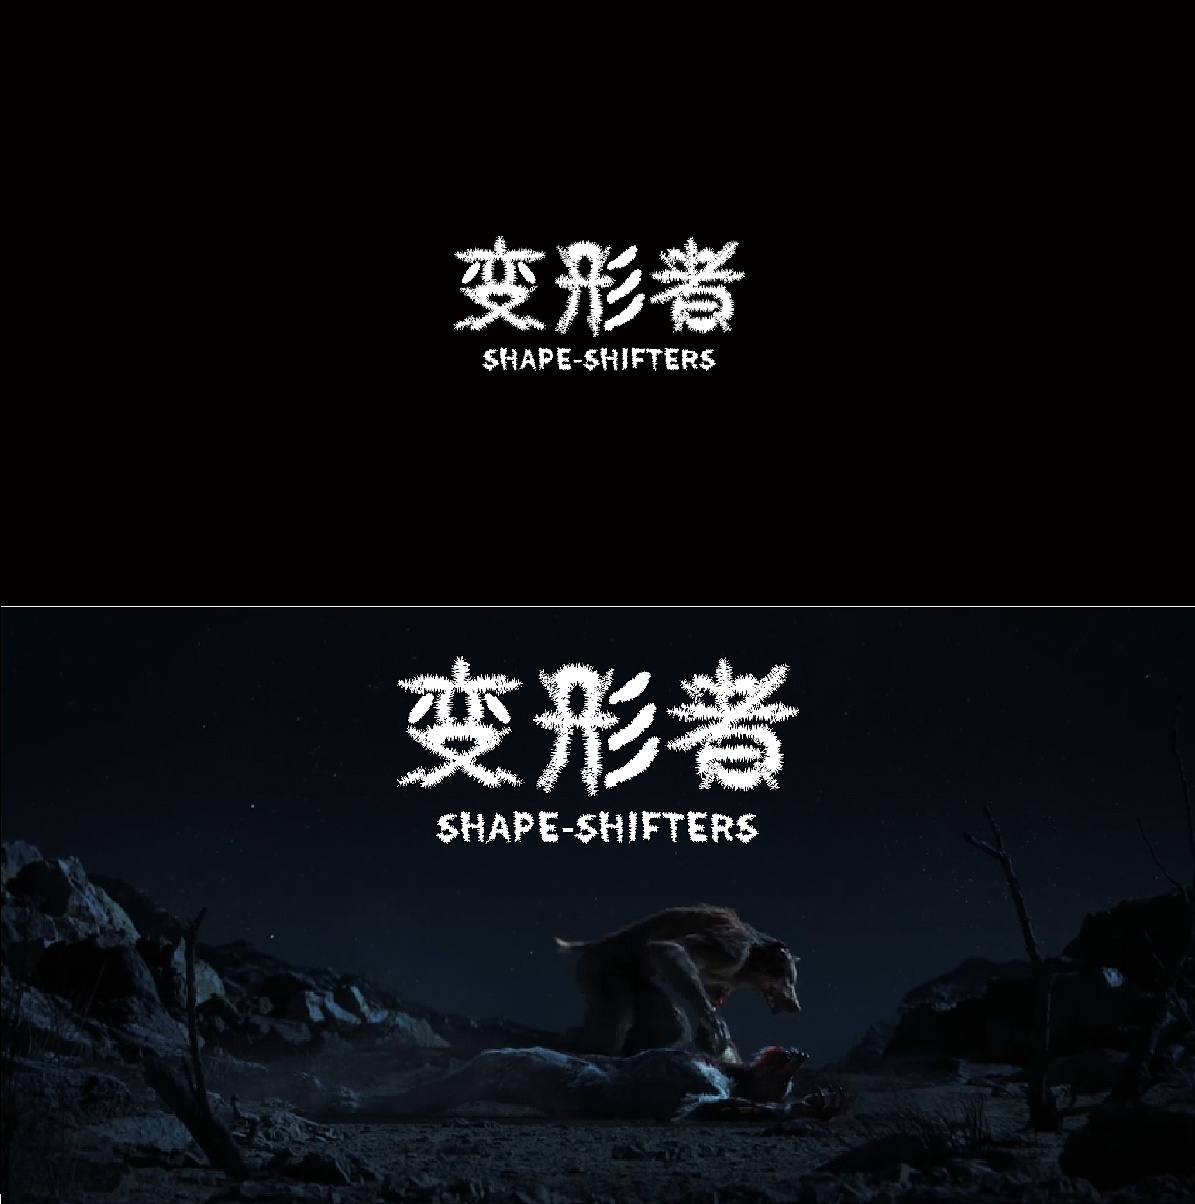 Chinese Creative Font Design-Chinese Creative Font Design with Love, Death and Robot as Themes